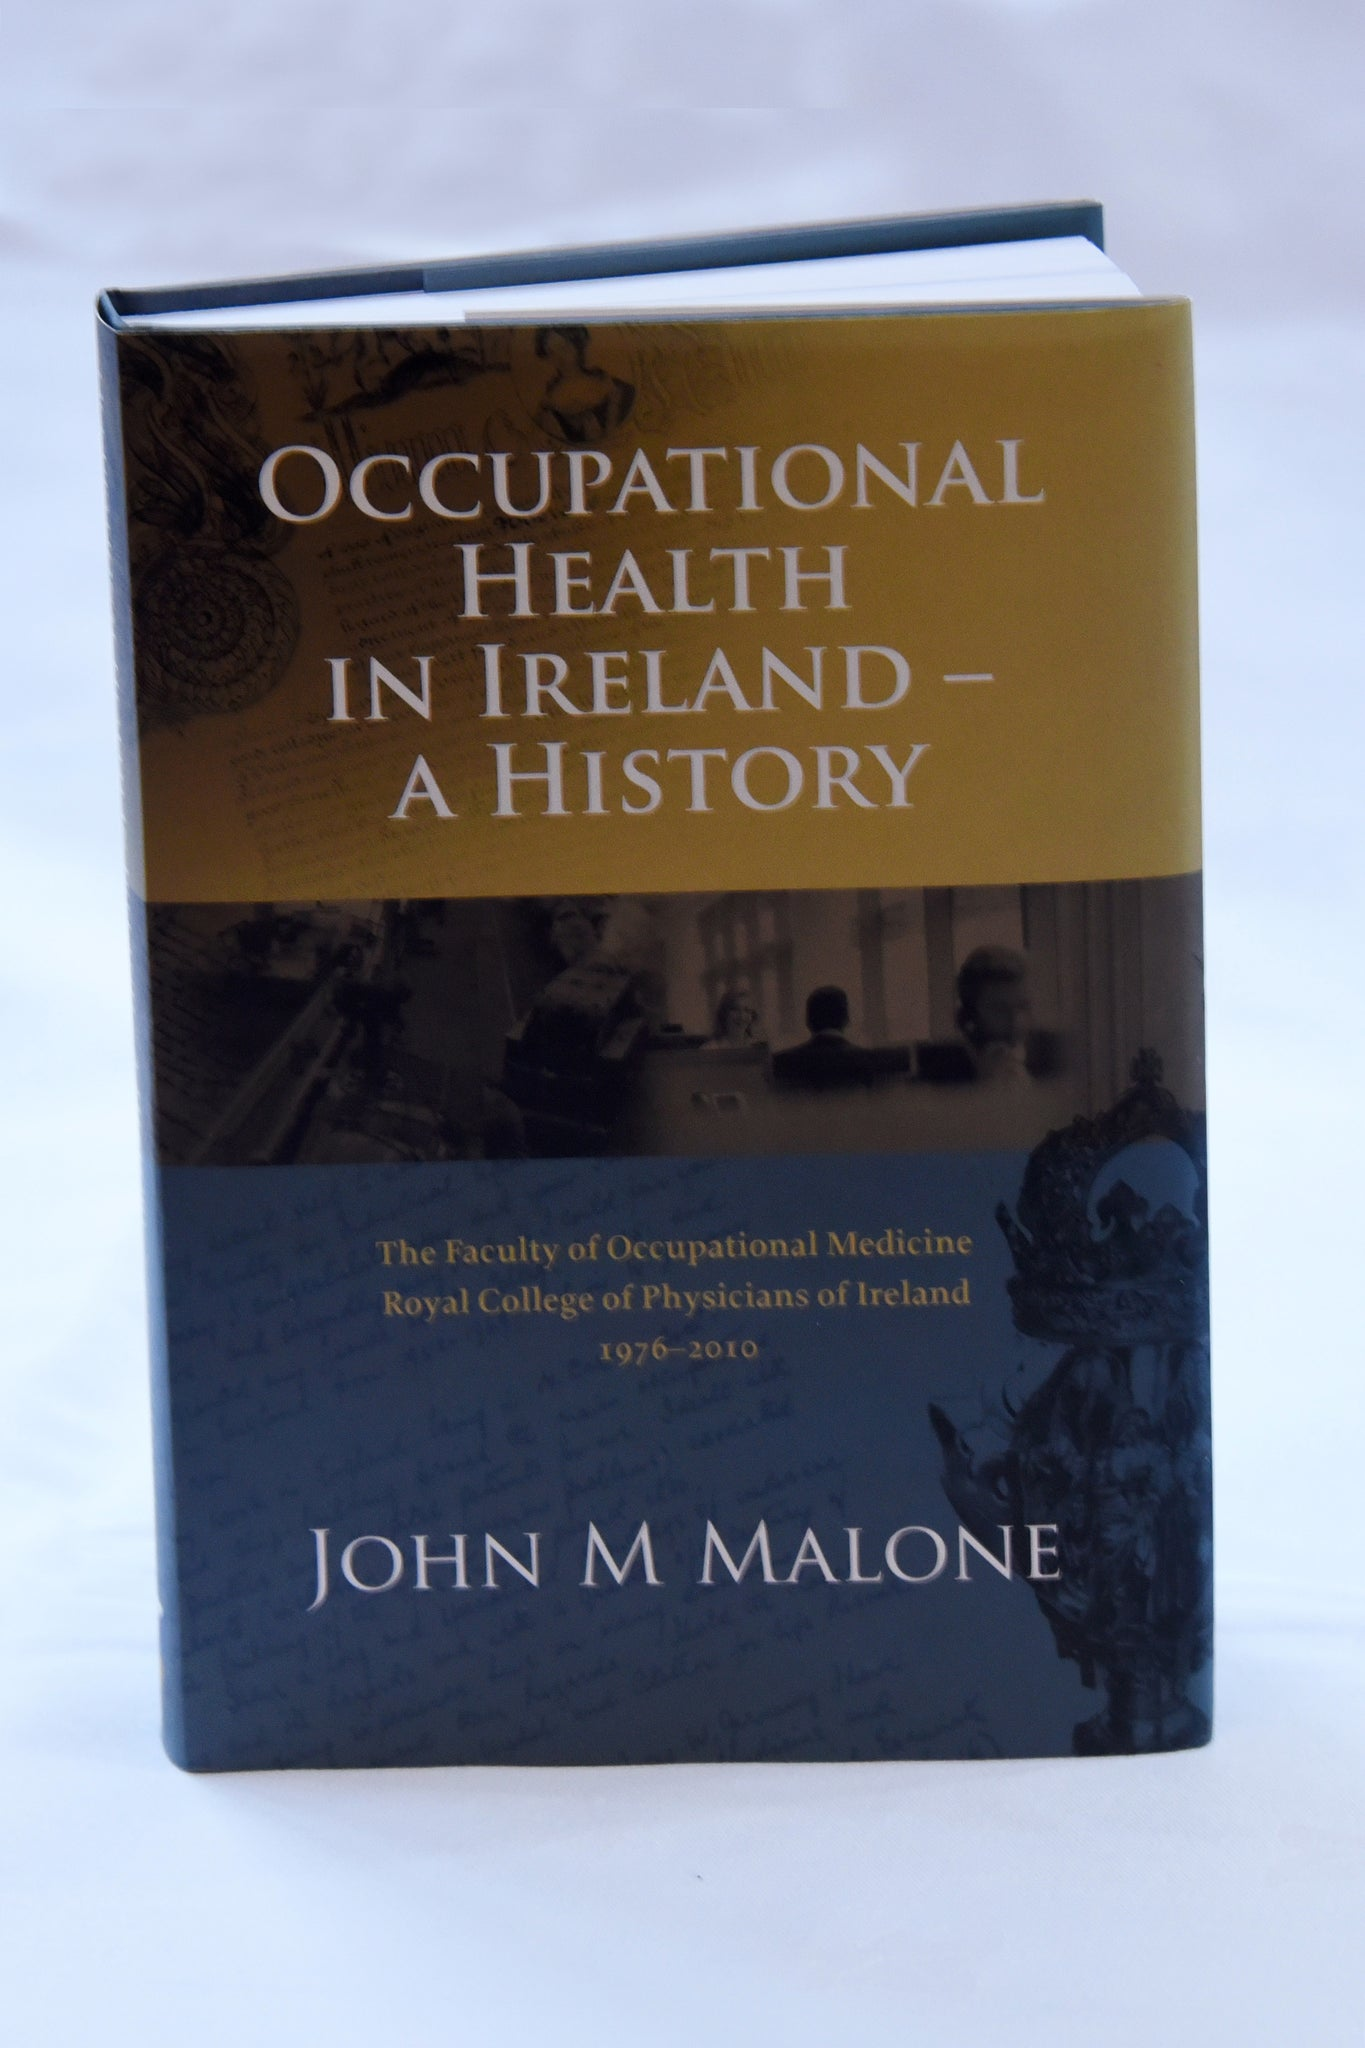 Occupational Health in Ireland – A history by Dr John M Malone